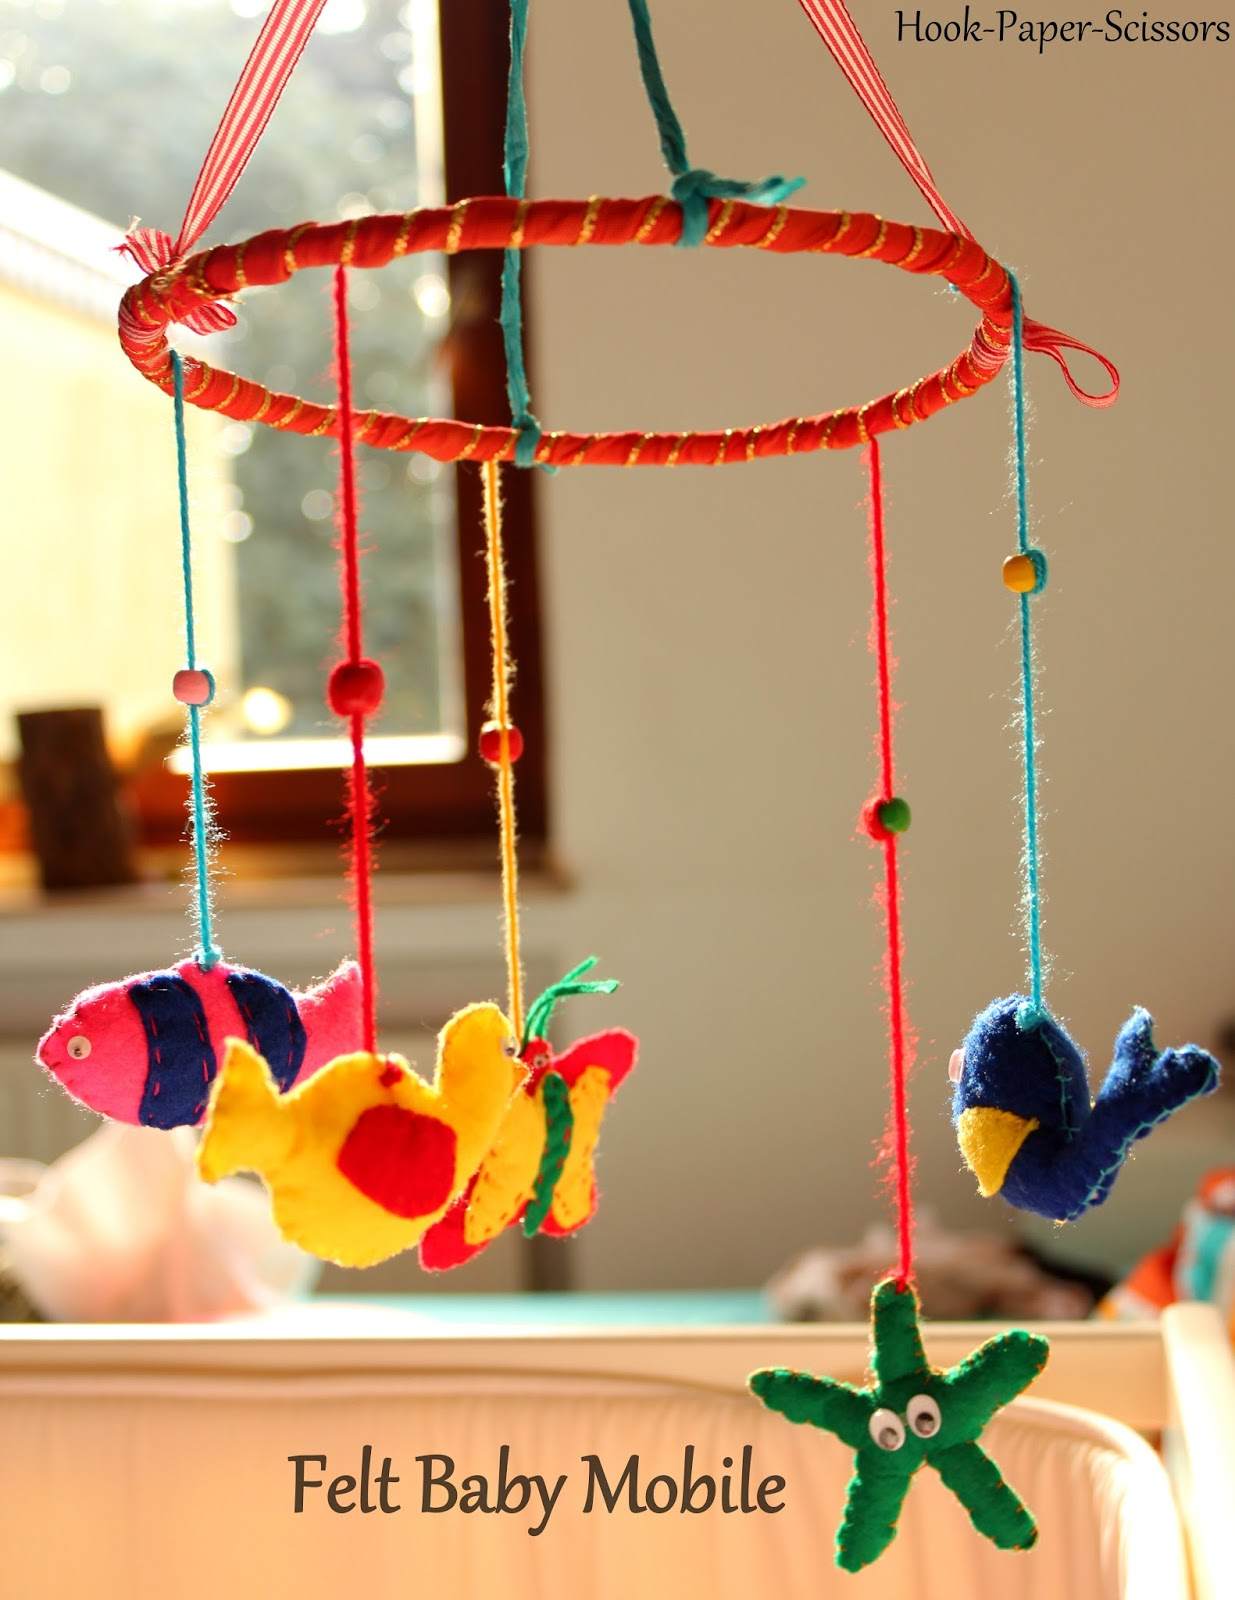 Hook paper scissors diy felt baby mobile for Diy felt flower mobile